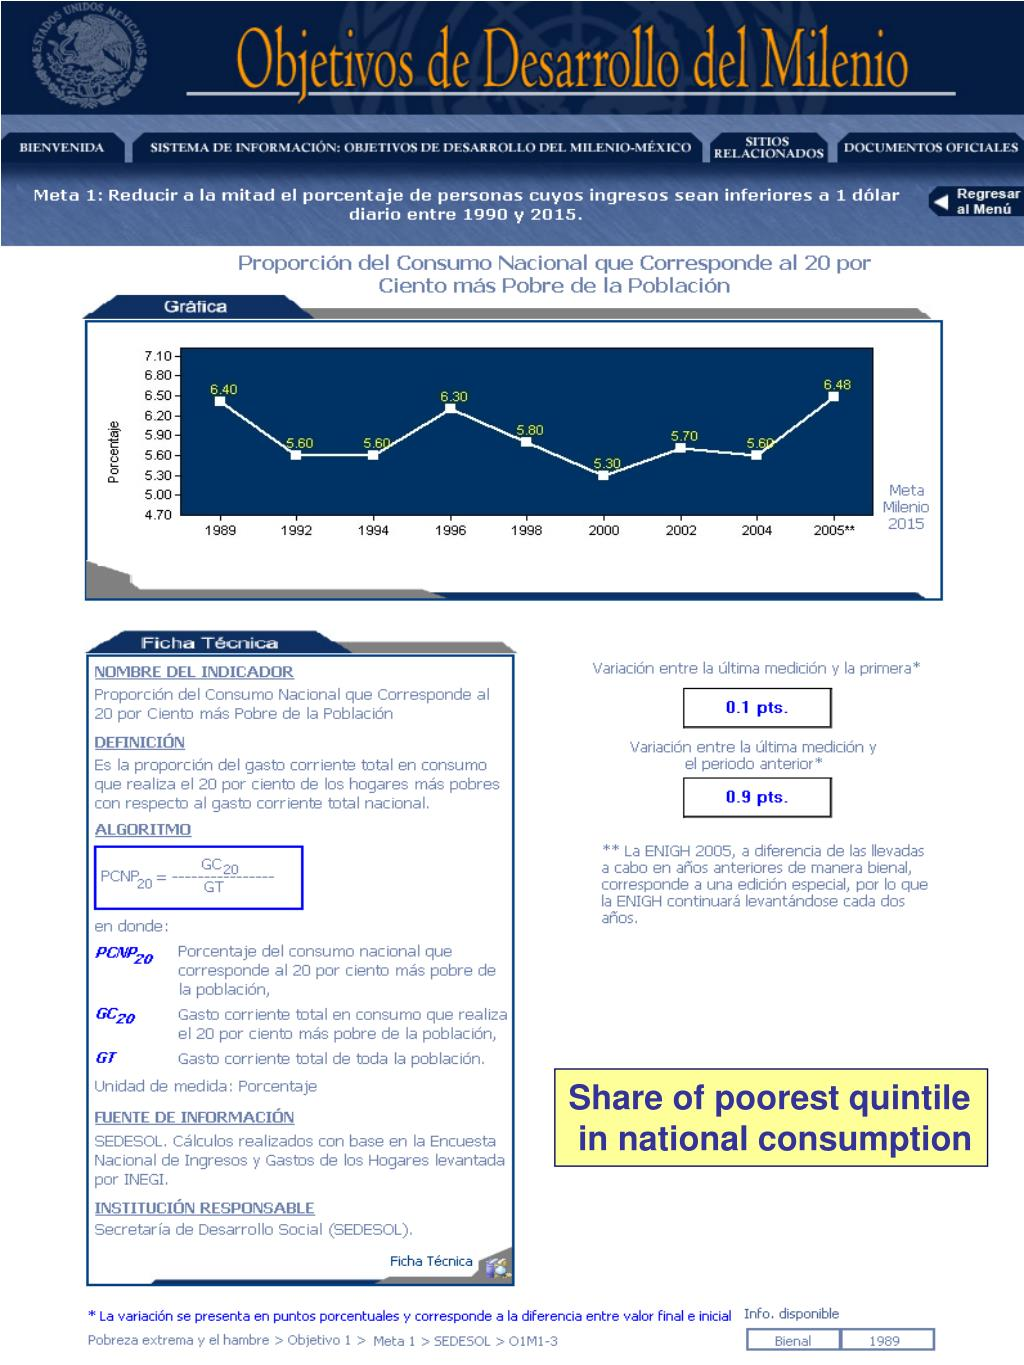 Share of poorest quintile